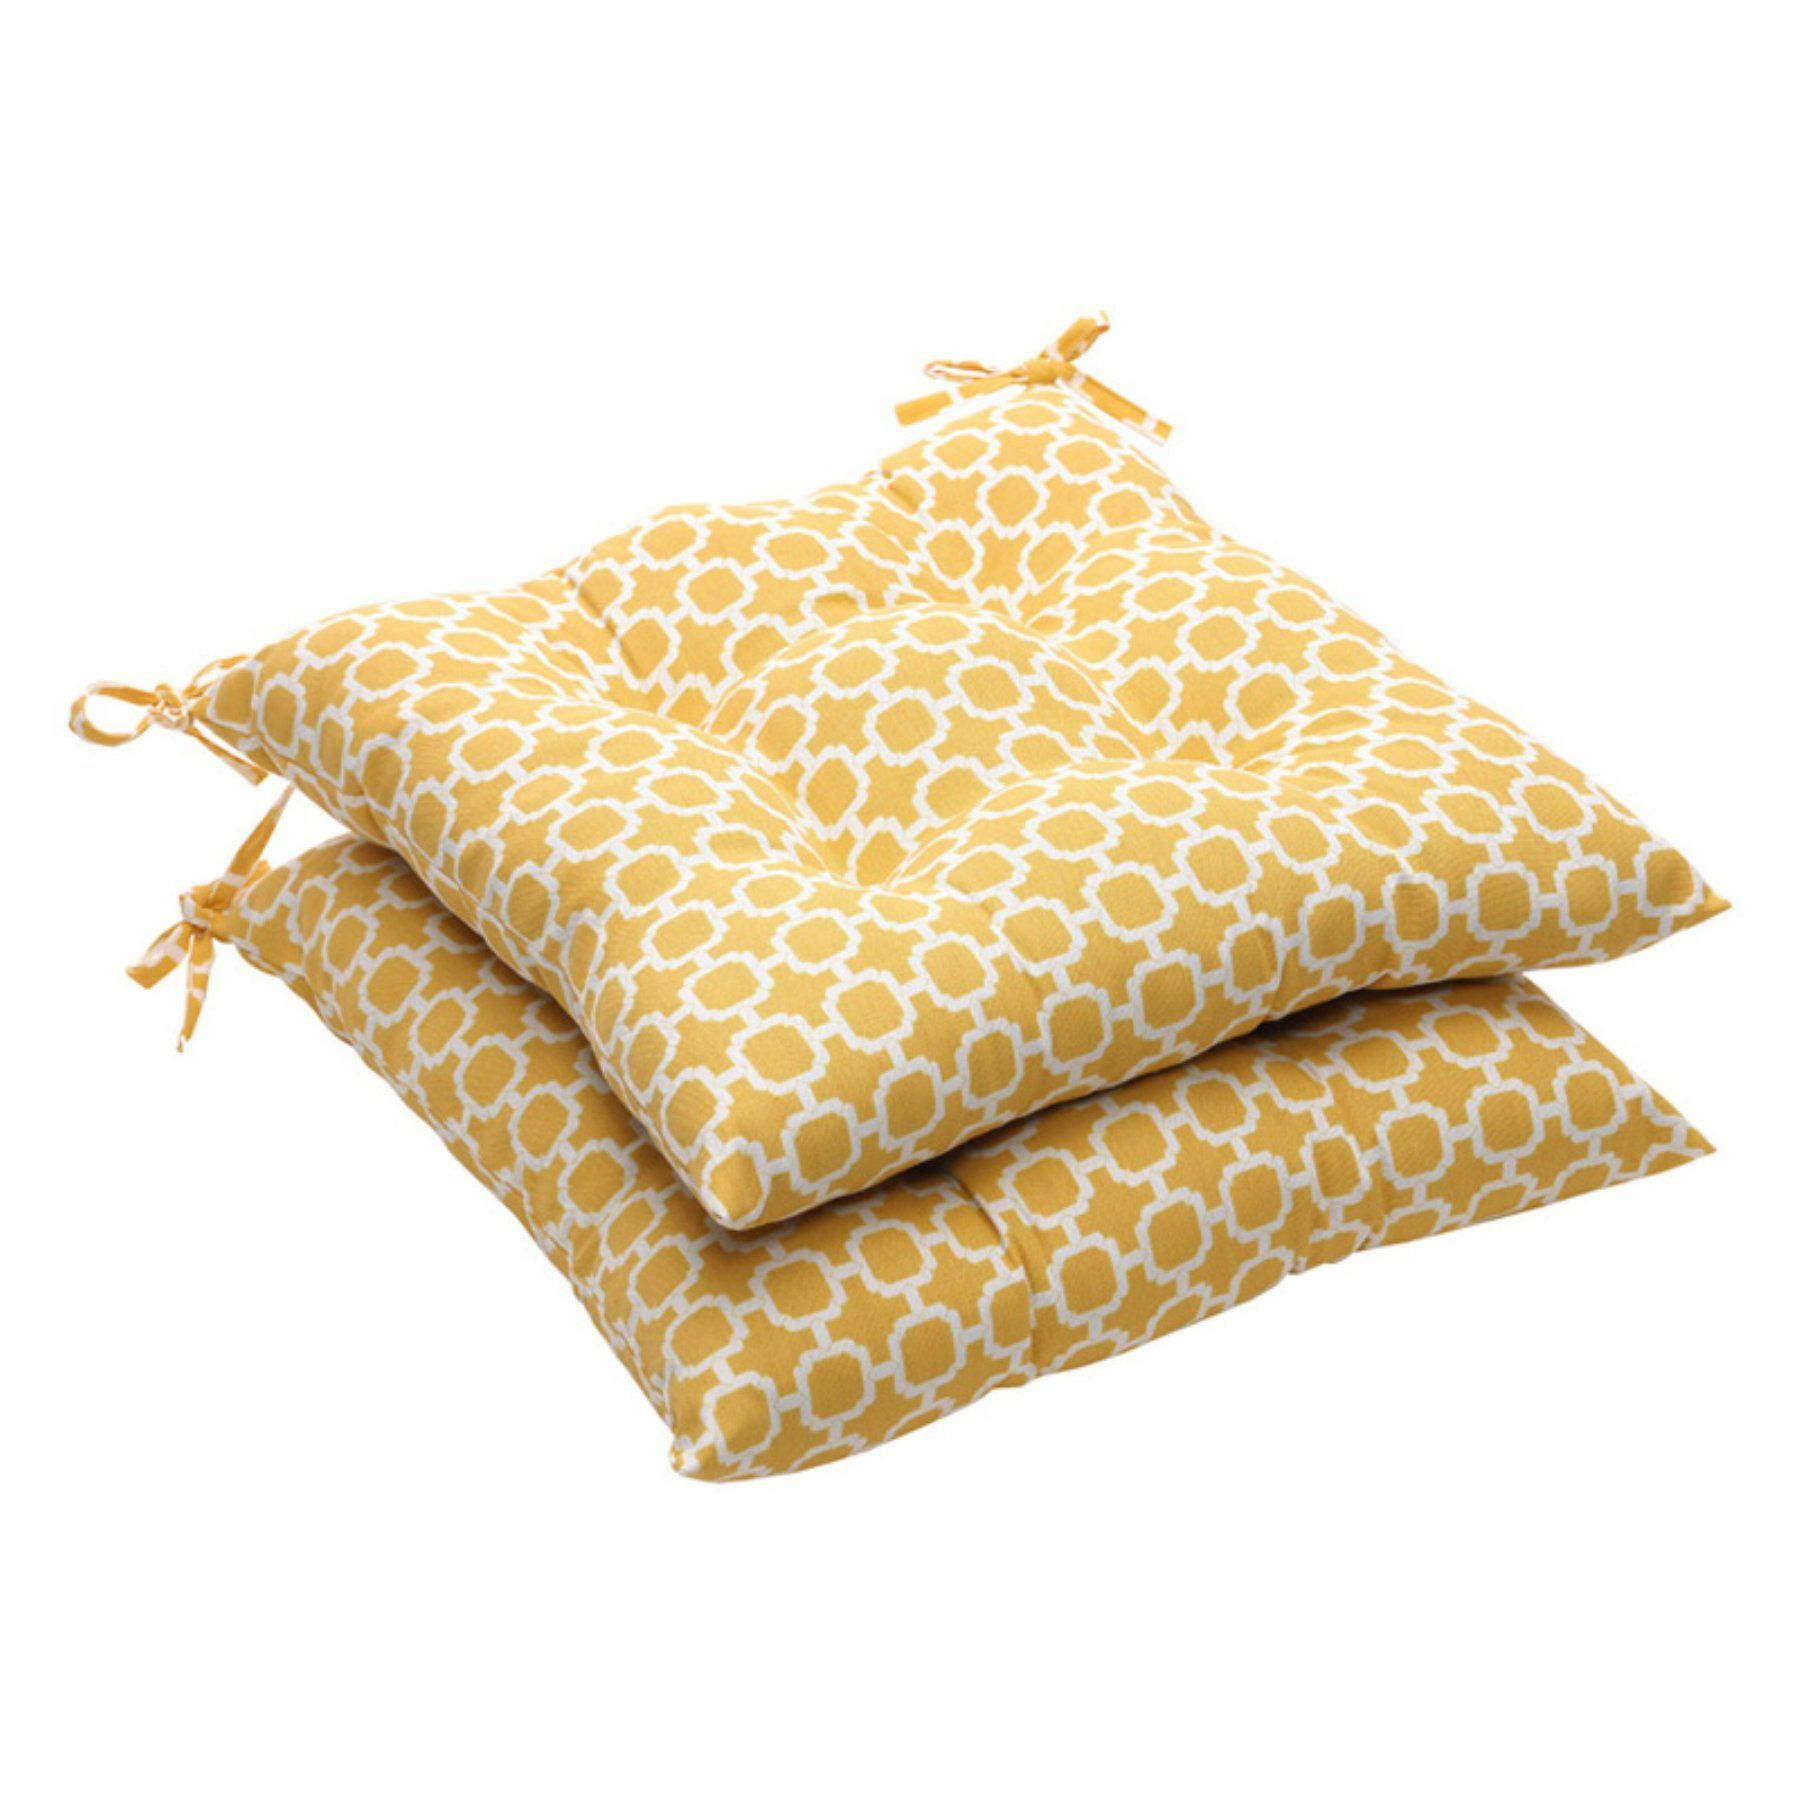 Pillow Perfect Geometric Printed Tufted Outdoor Seat Cushion 19 X